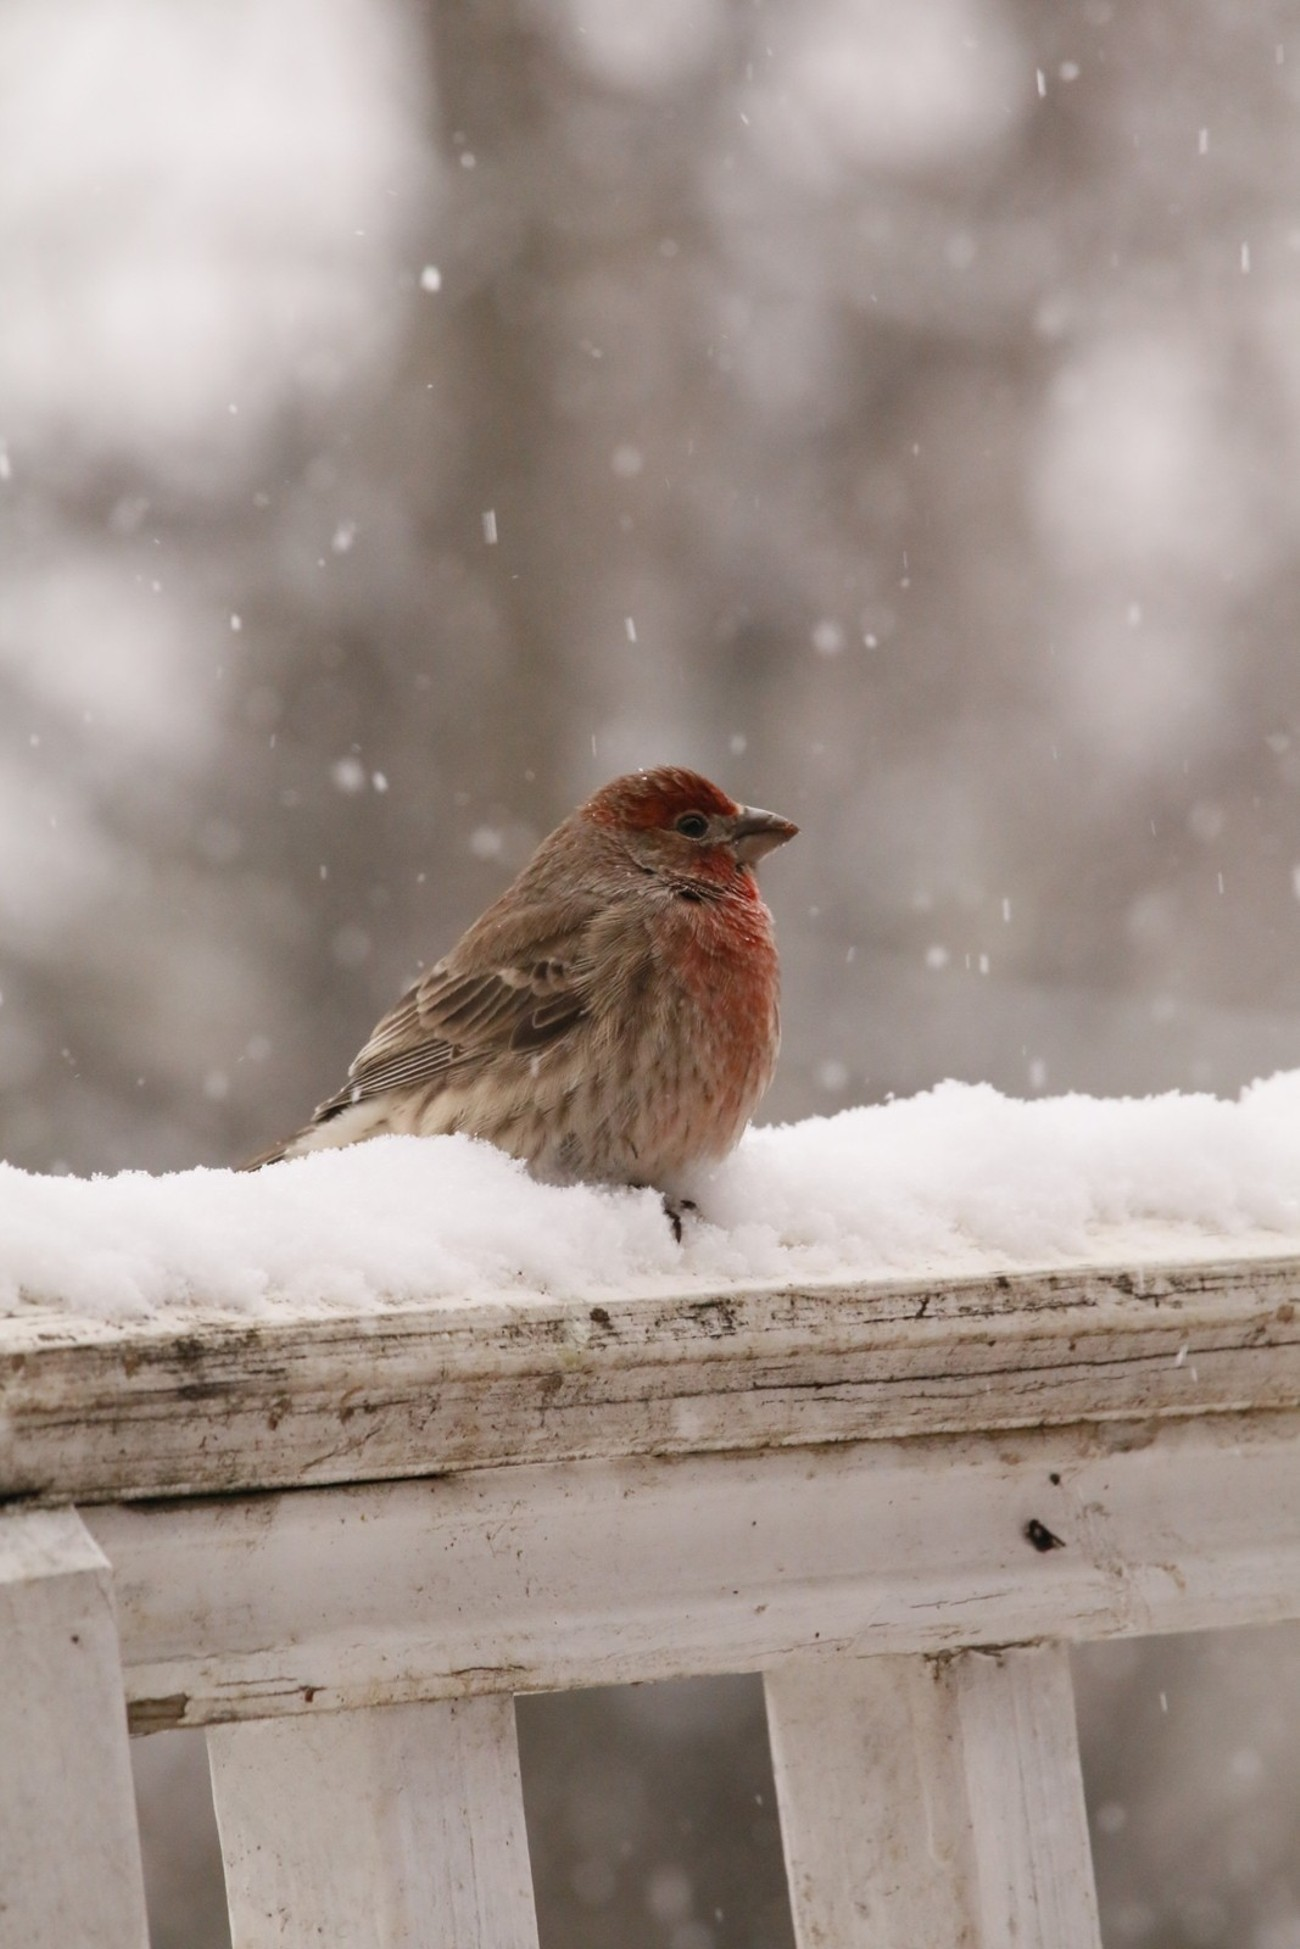 Winter snow is not common where we live. This little bird was doing all it could to stay warm.